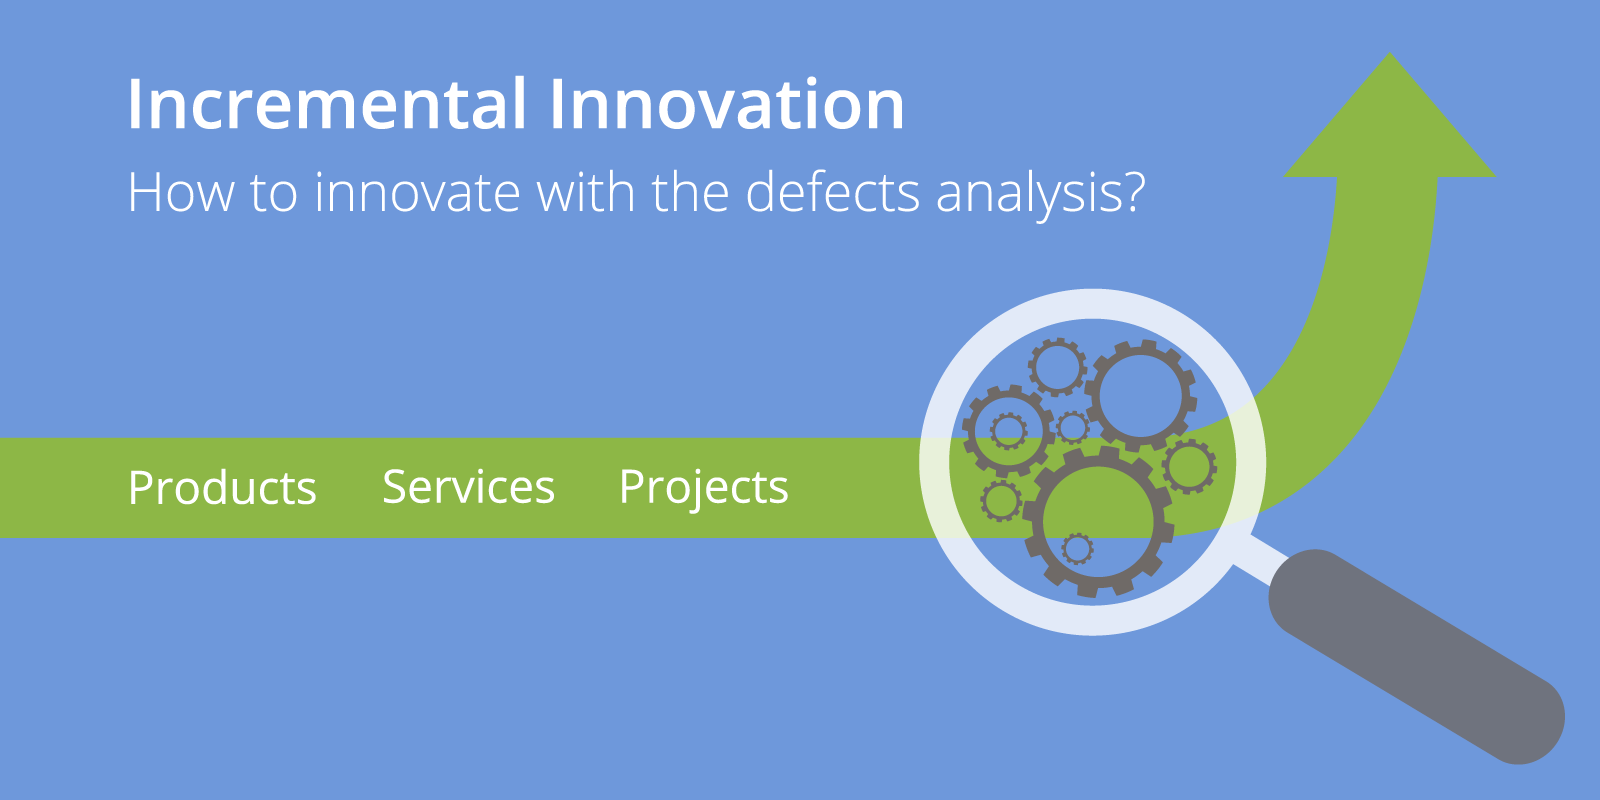 Incremental Innovation Defects analysis